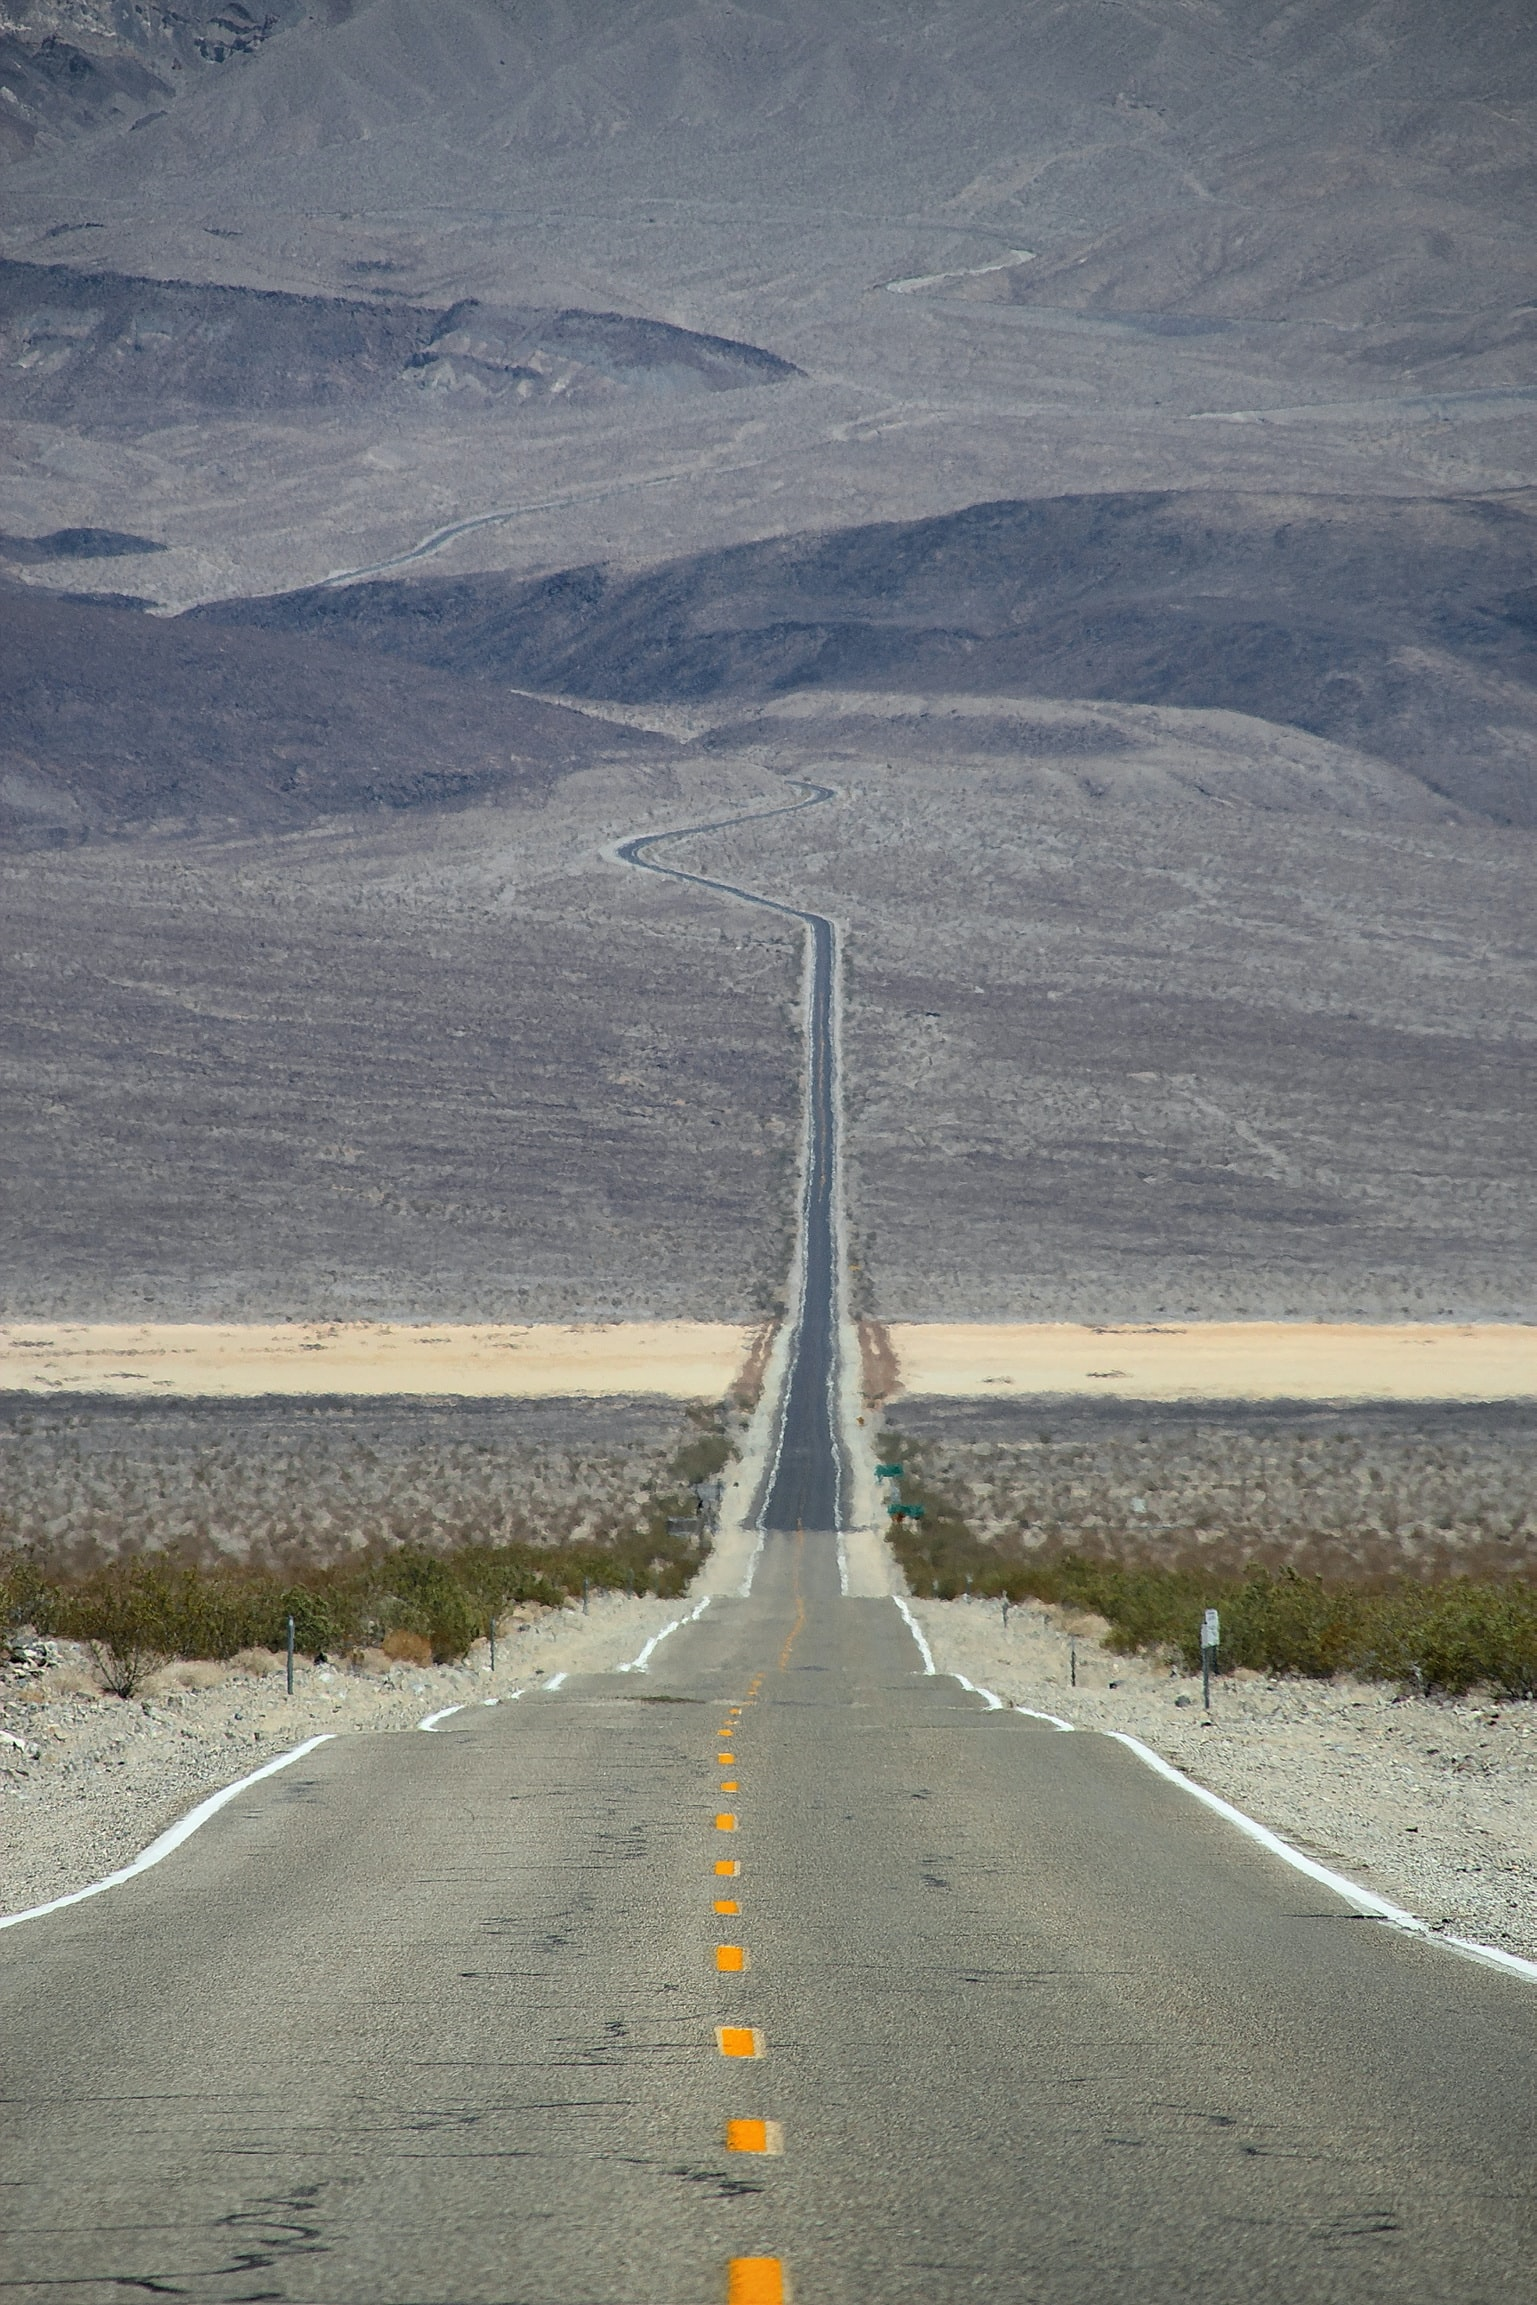 Empty rural highway road creates a line through the desert terrain